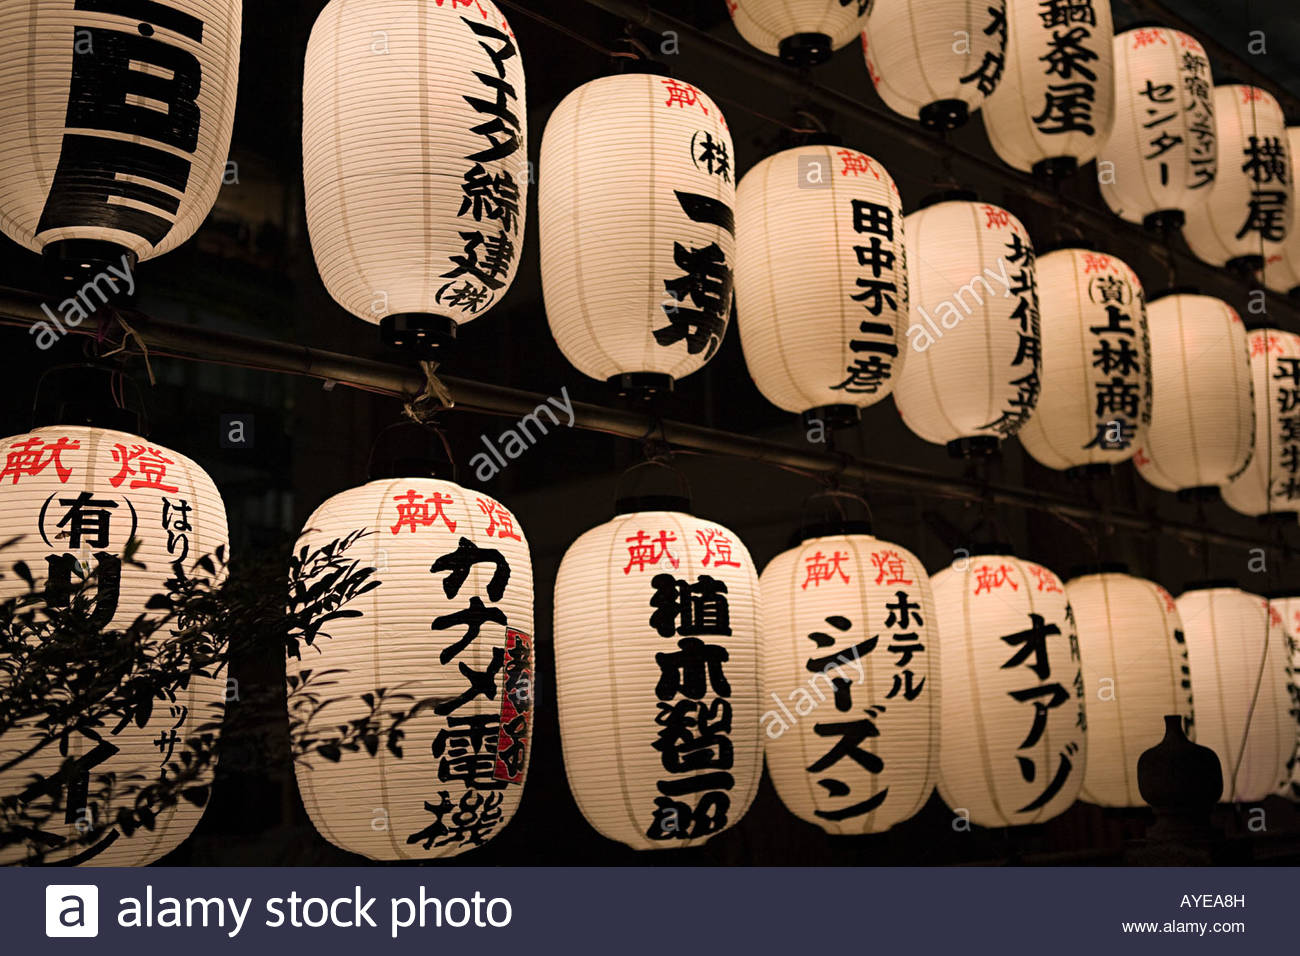 Row of chinese lanterns - Stock Image